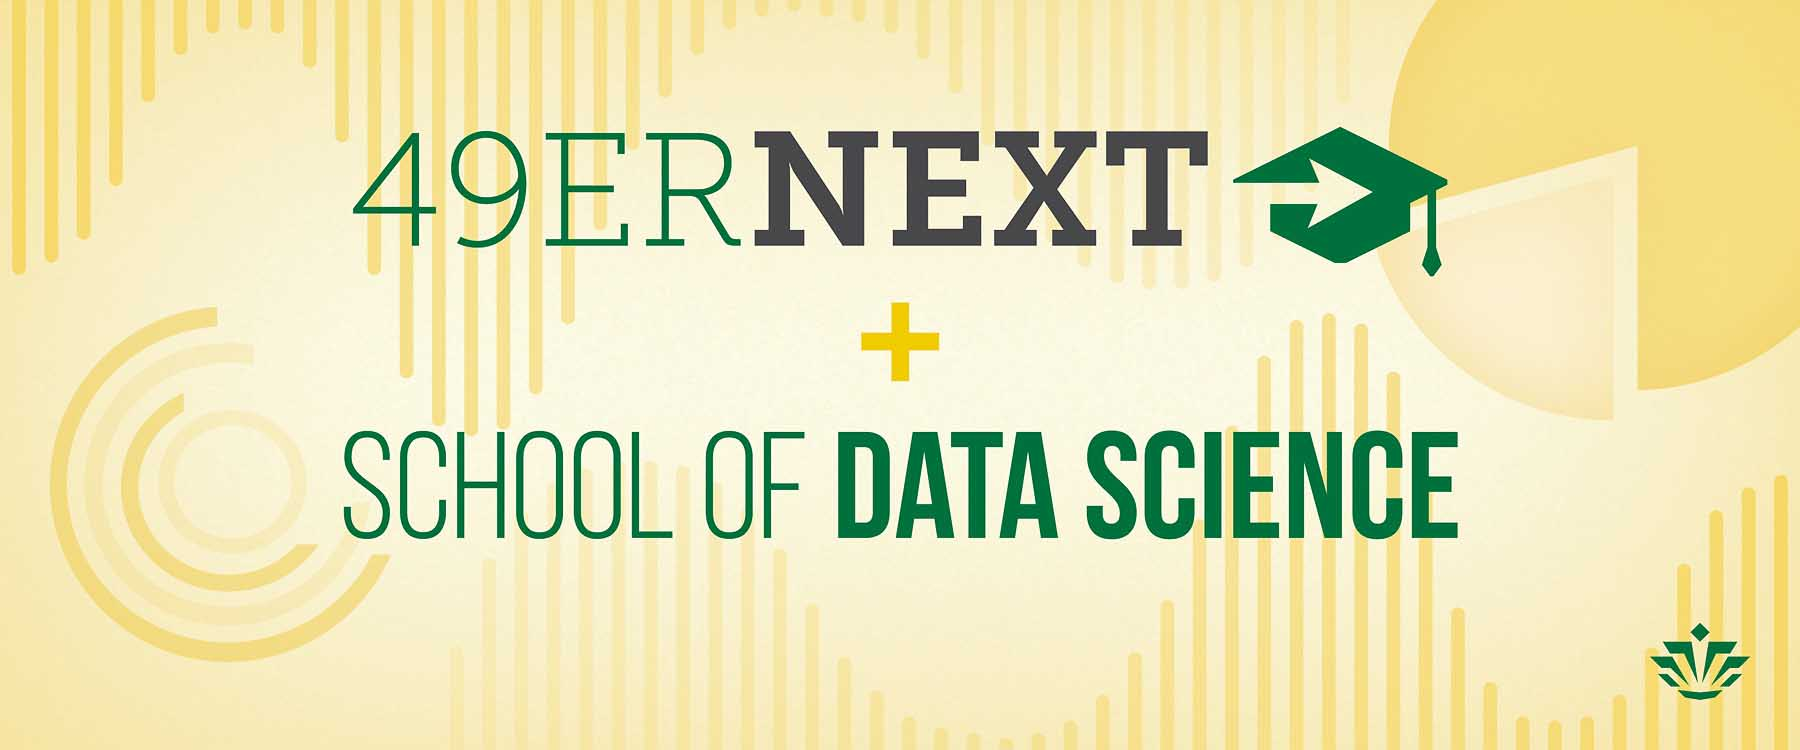 49erNext and a data science transfer program will provide a seamless bachelor's degree completion process for students from North Carolina's largest community college.